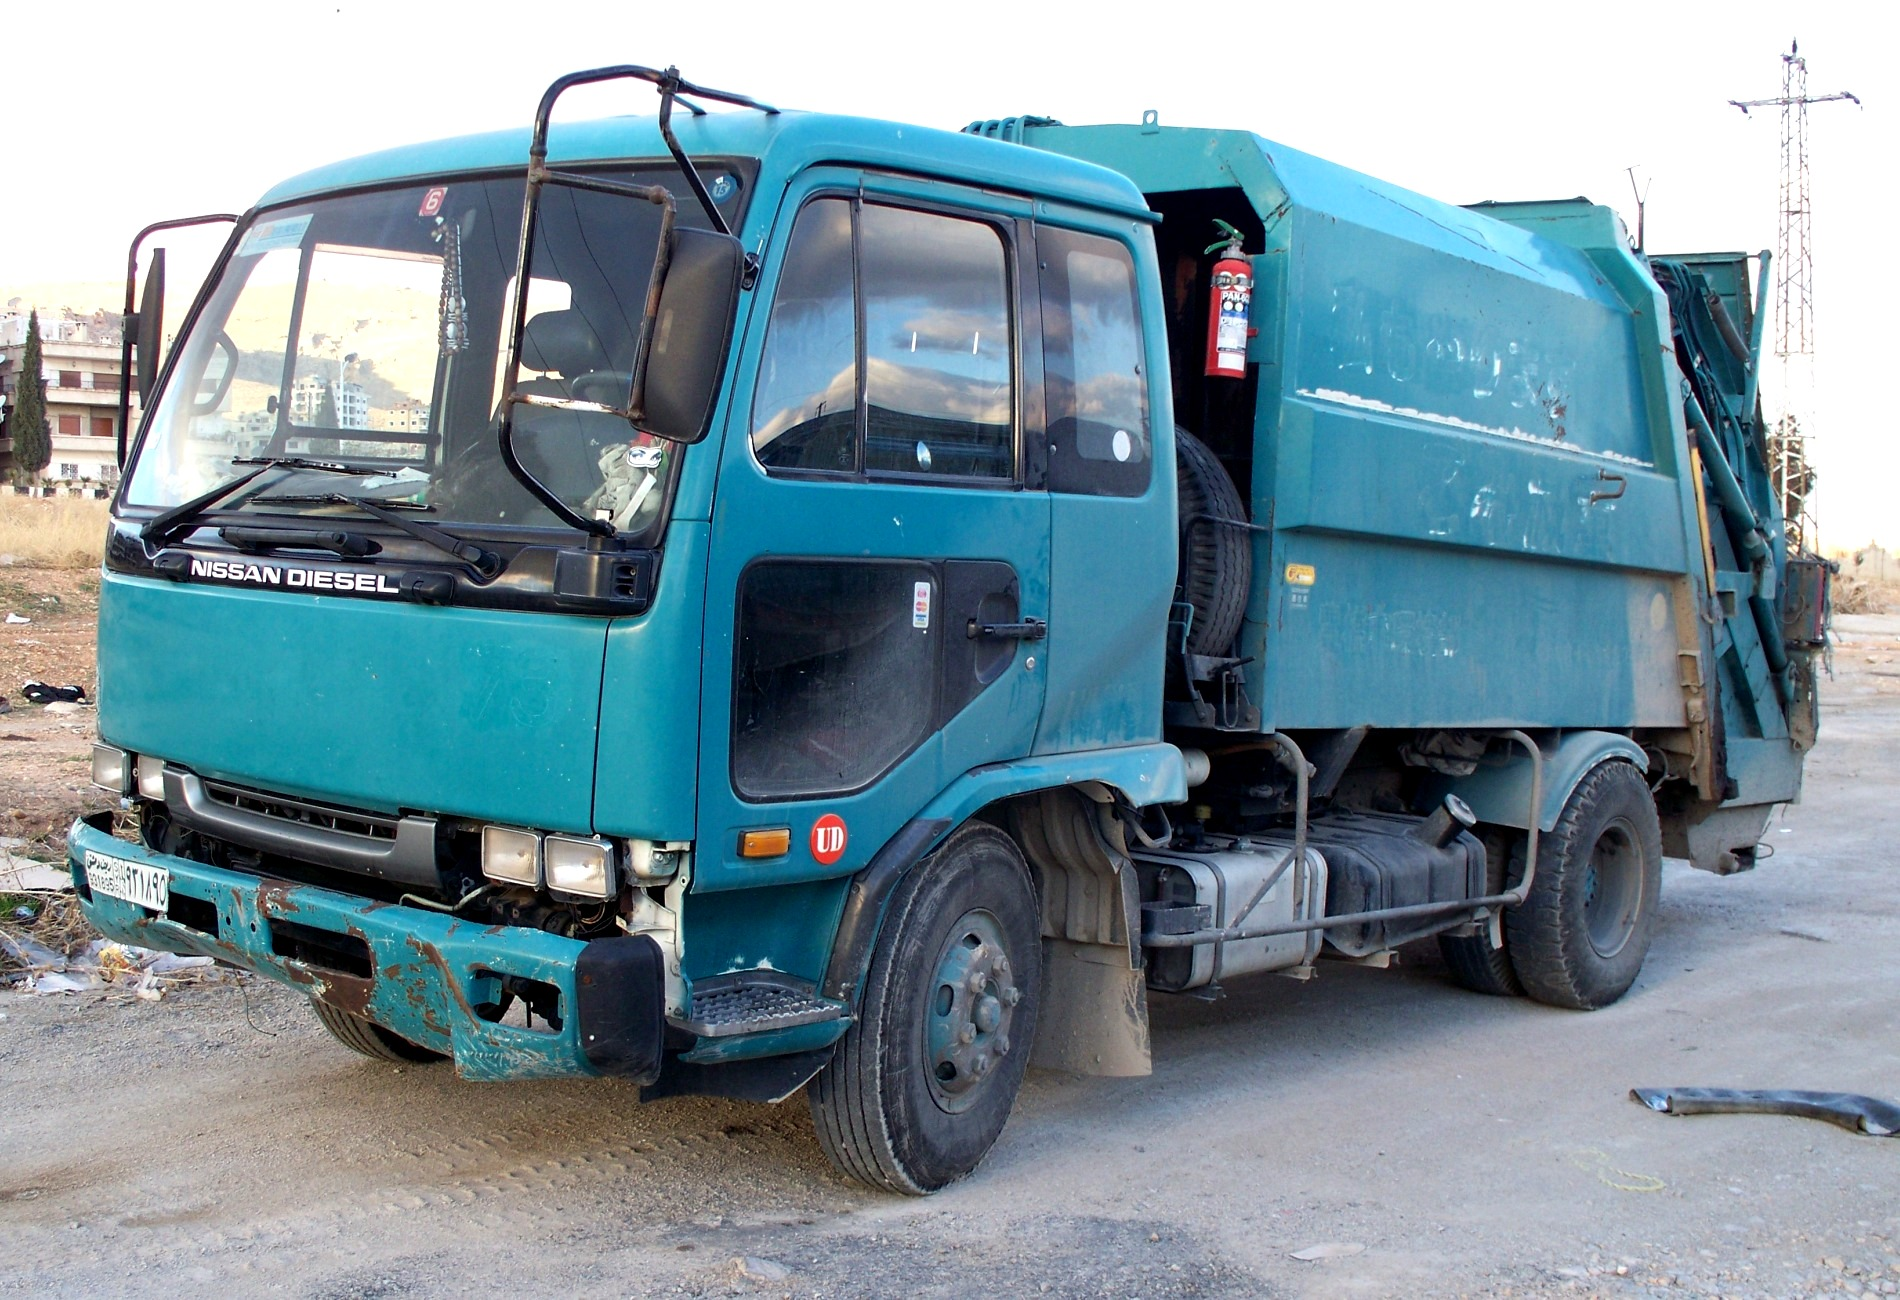 File:Nissan Diesel waste collection truck.JPG